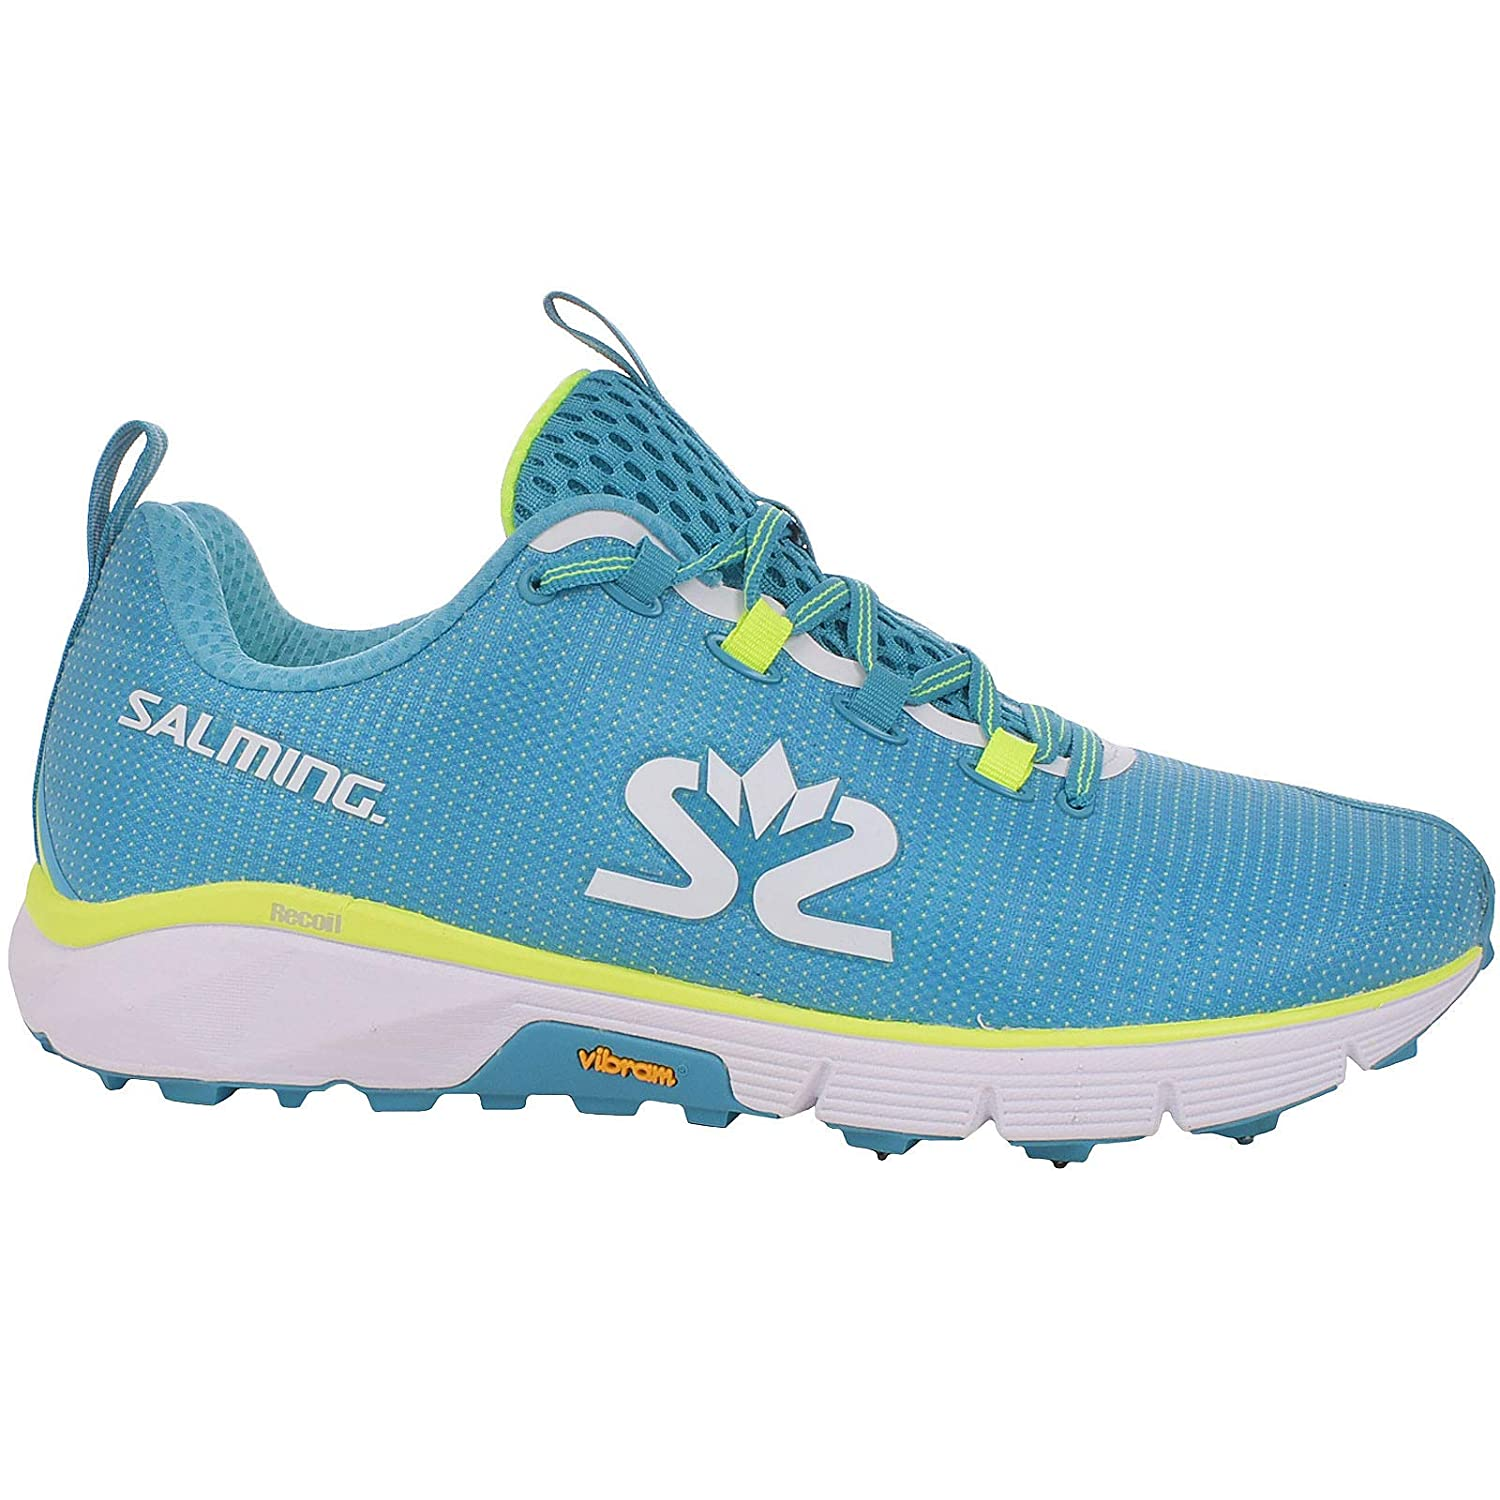 Amazon.com: Salming Mens iSpike Outdoor Running Shoes - Blue: Sports & Outdoors